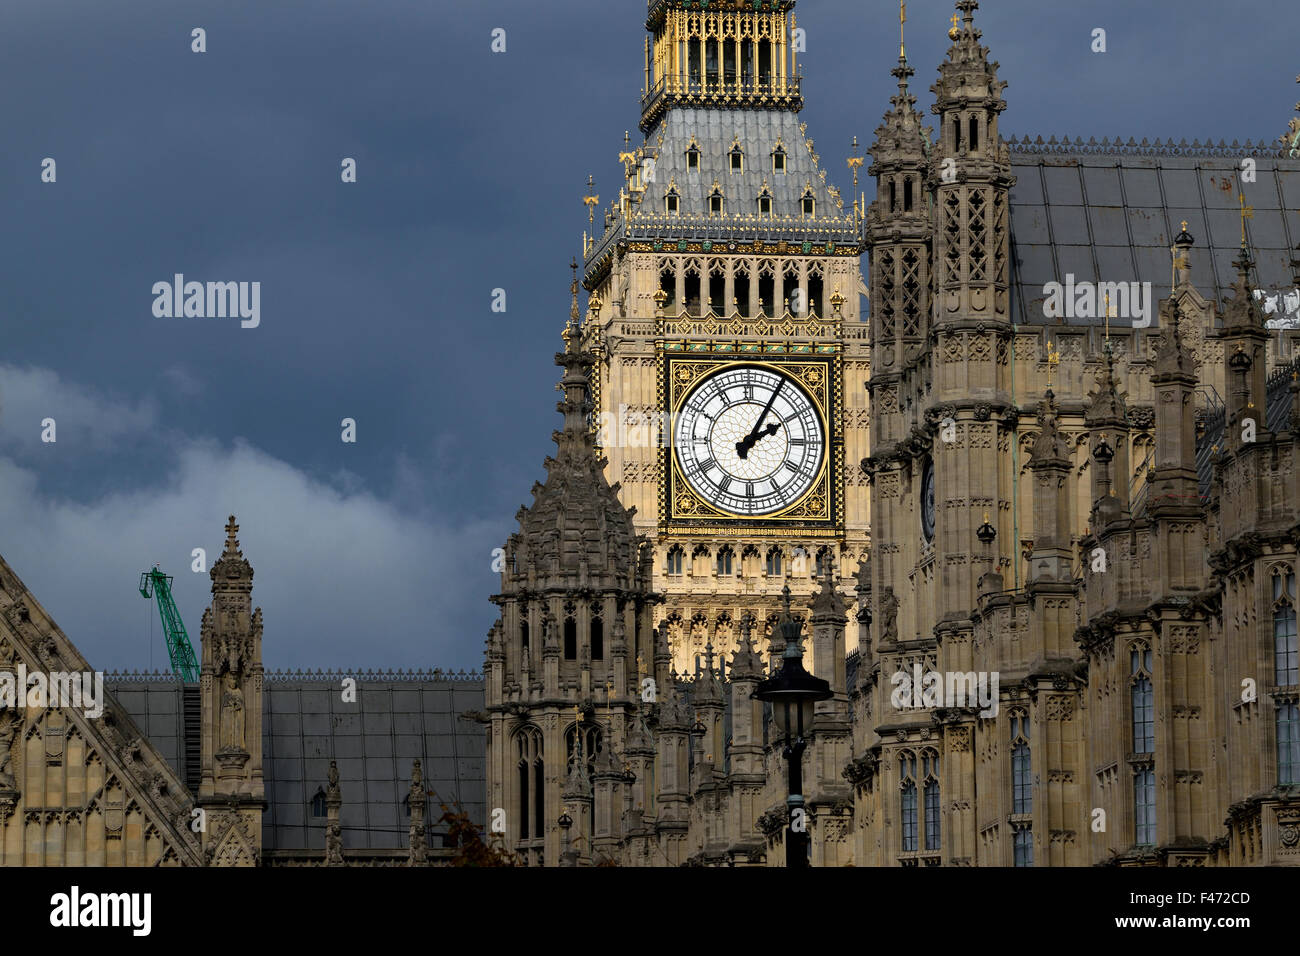 London, England, UK. Big Ben and the Houses of Parliament in bad weather - sun on the clock - Stock Image